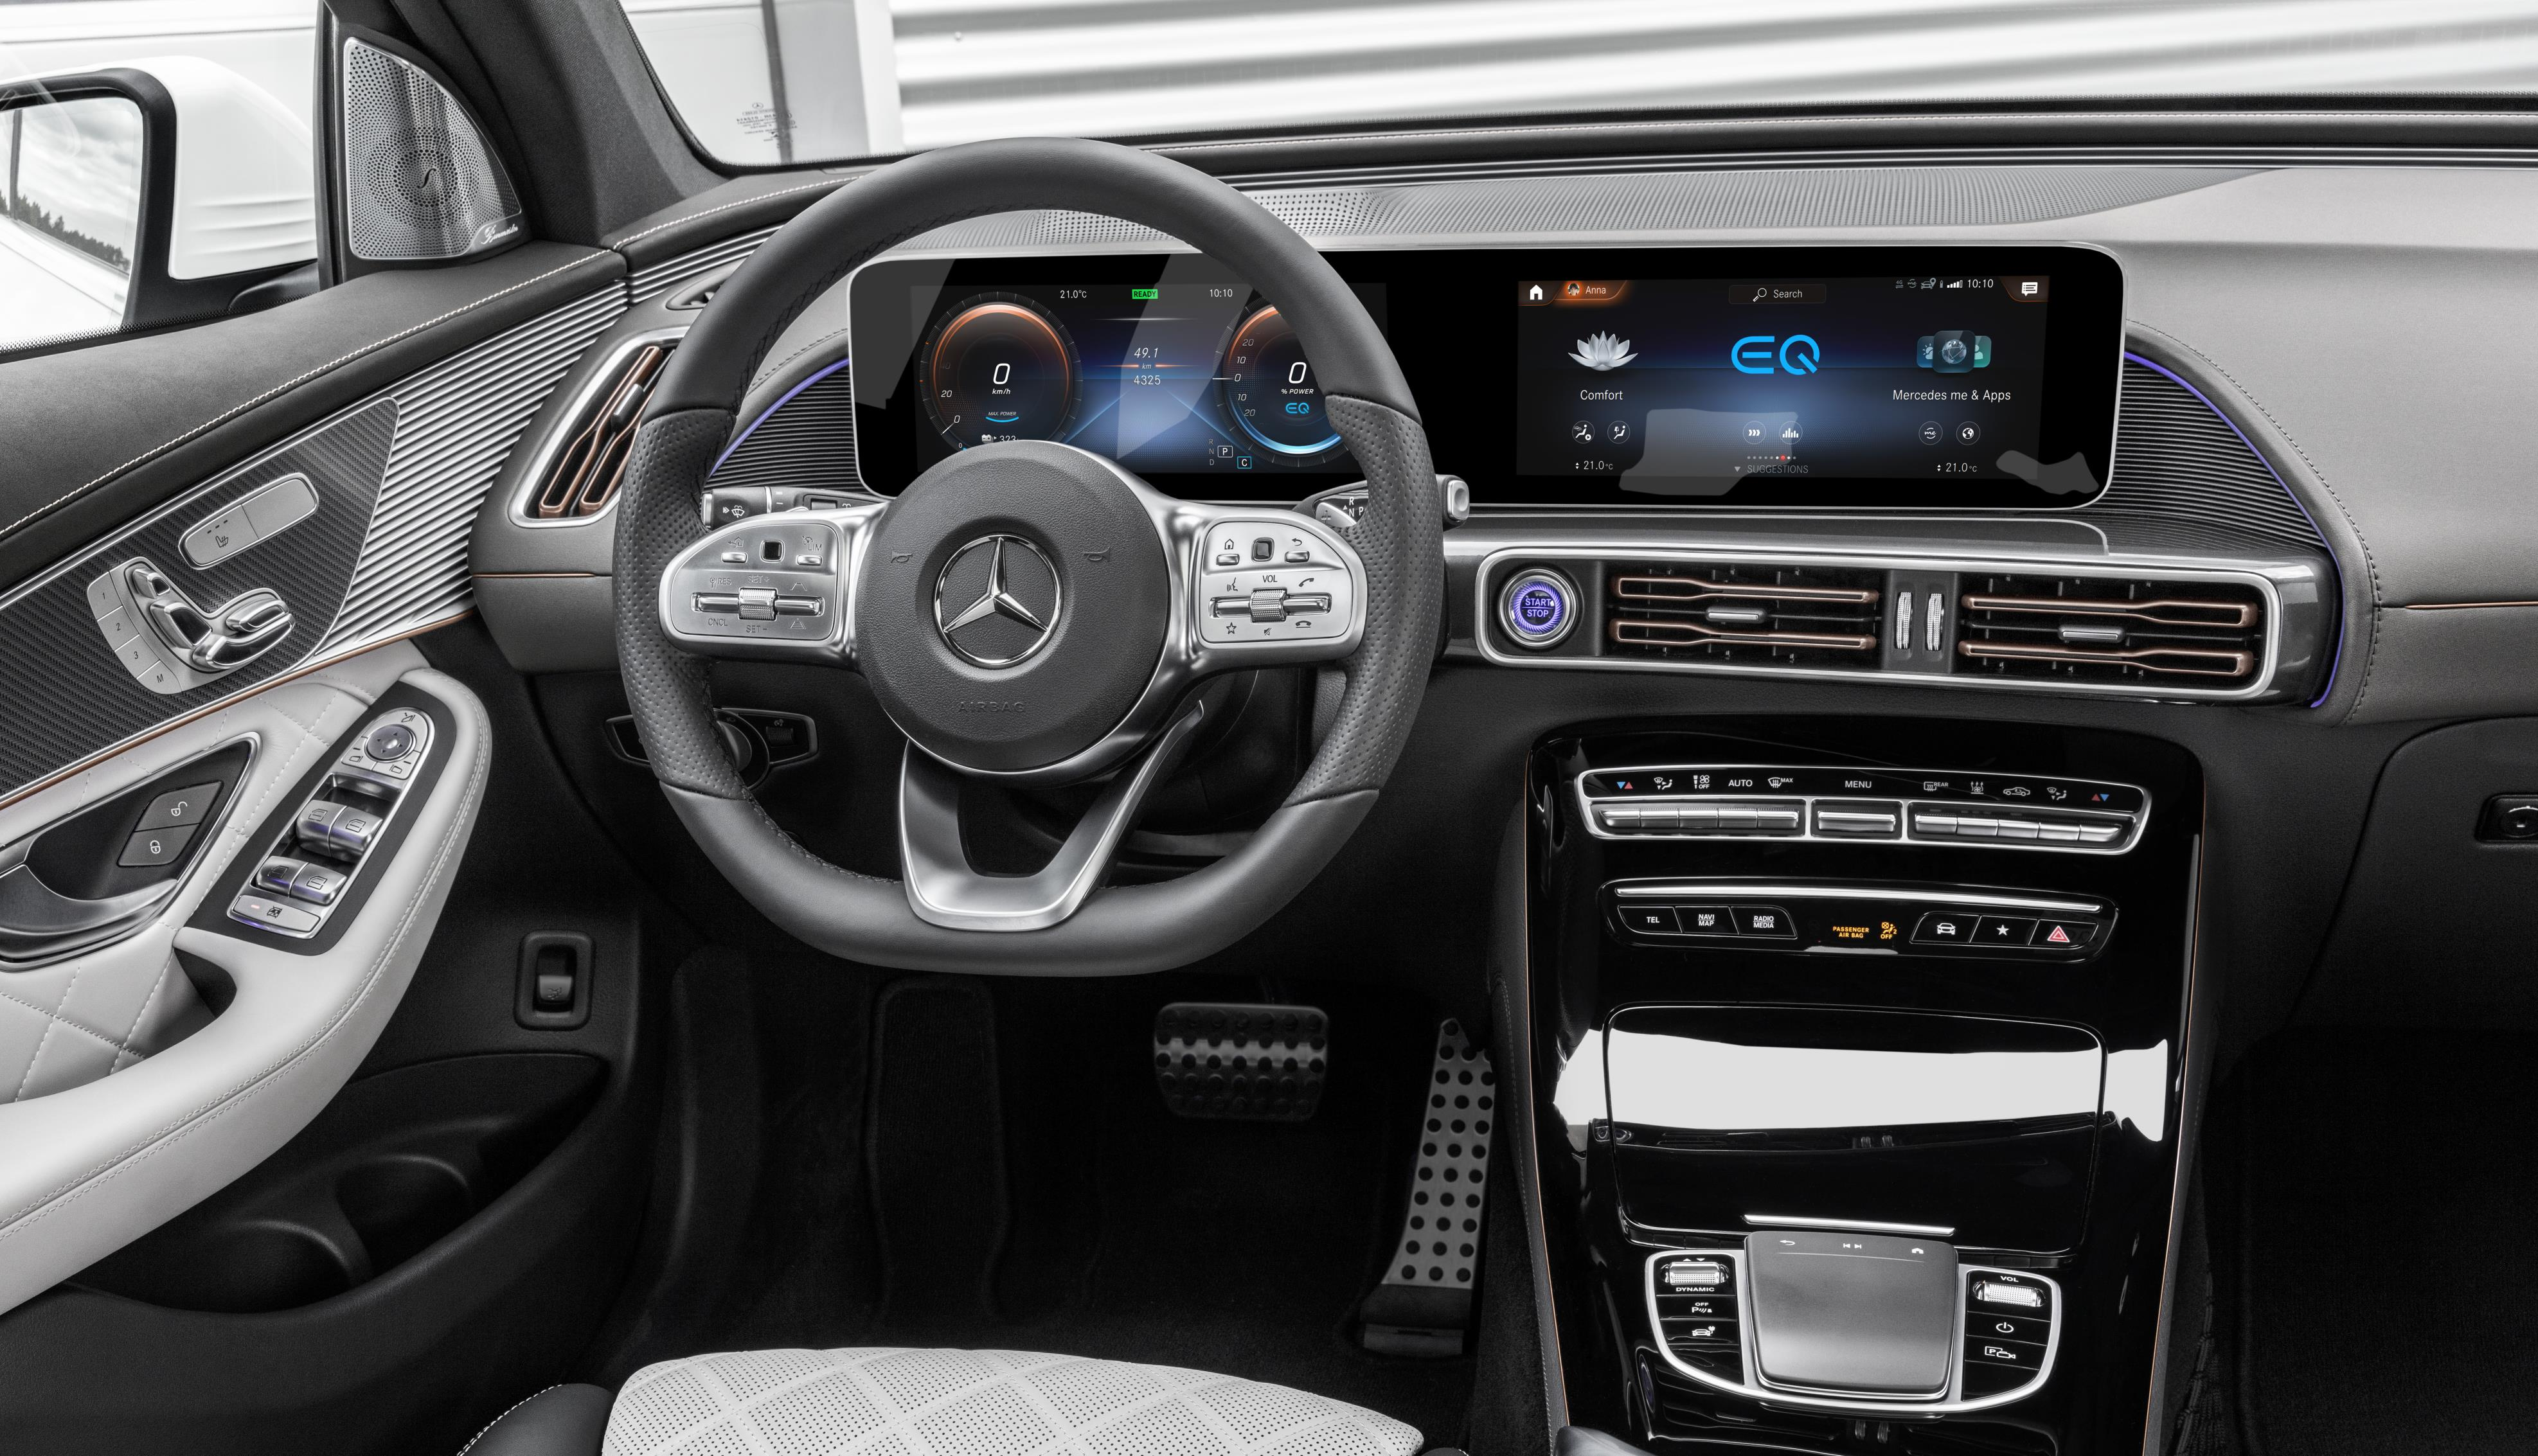 The interior of the new Mercedes-Benz EQC